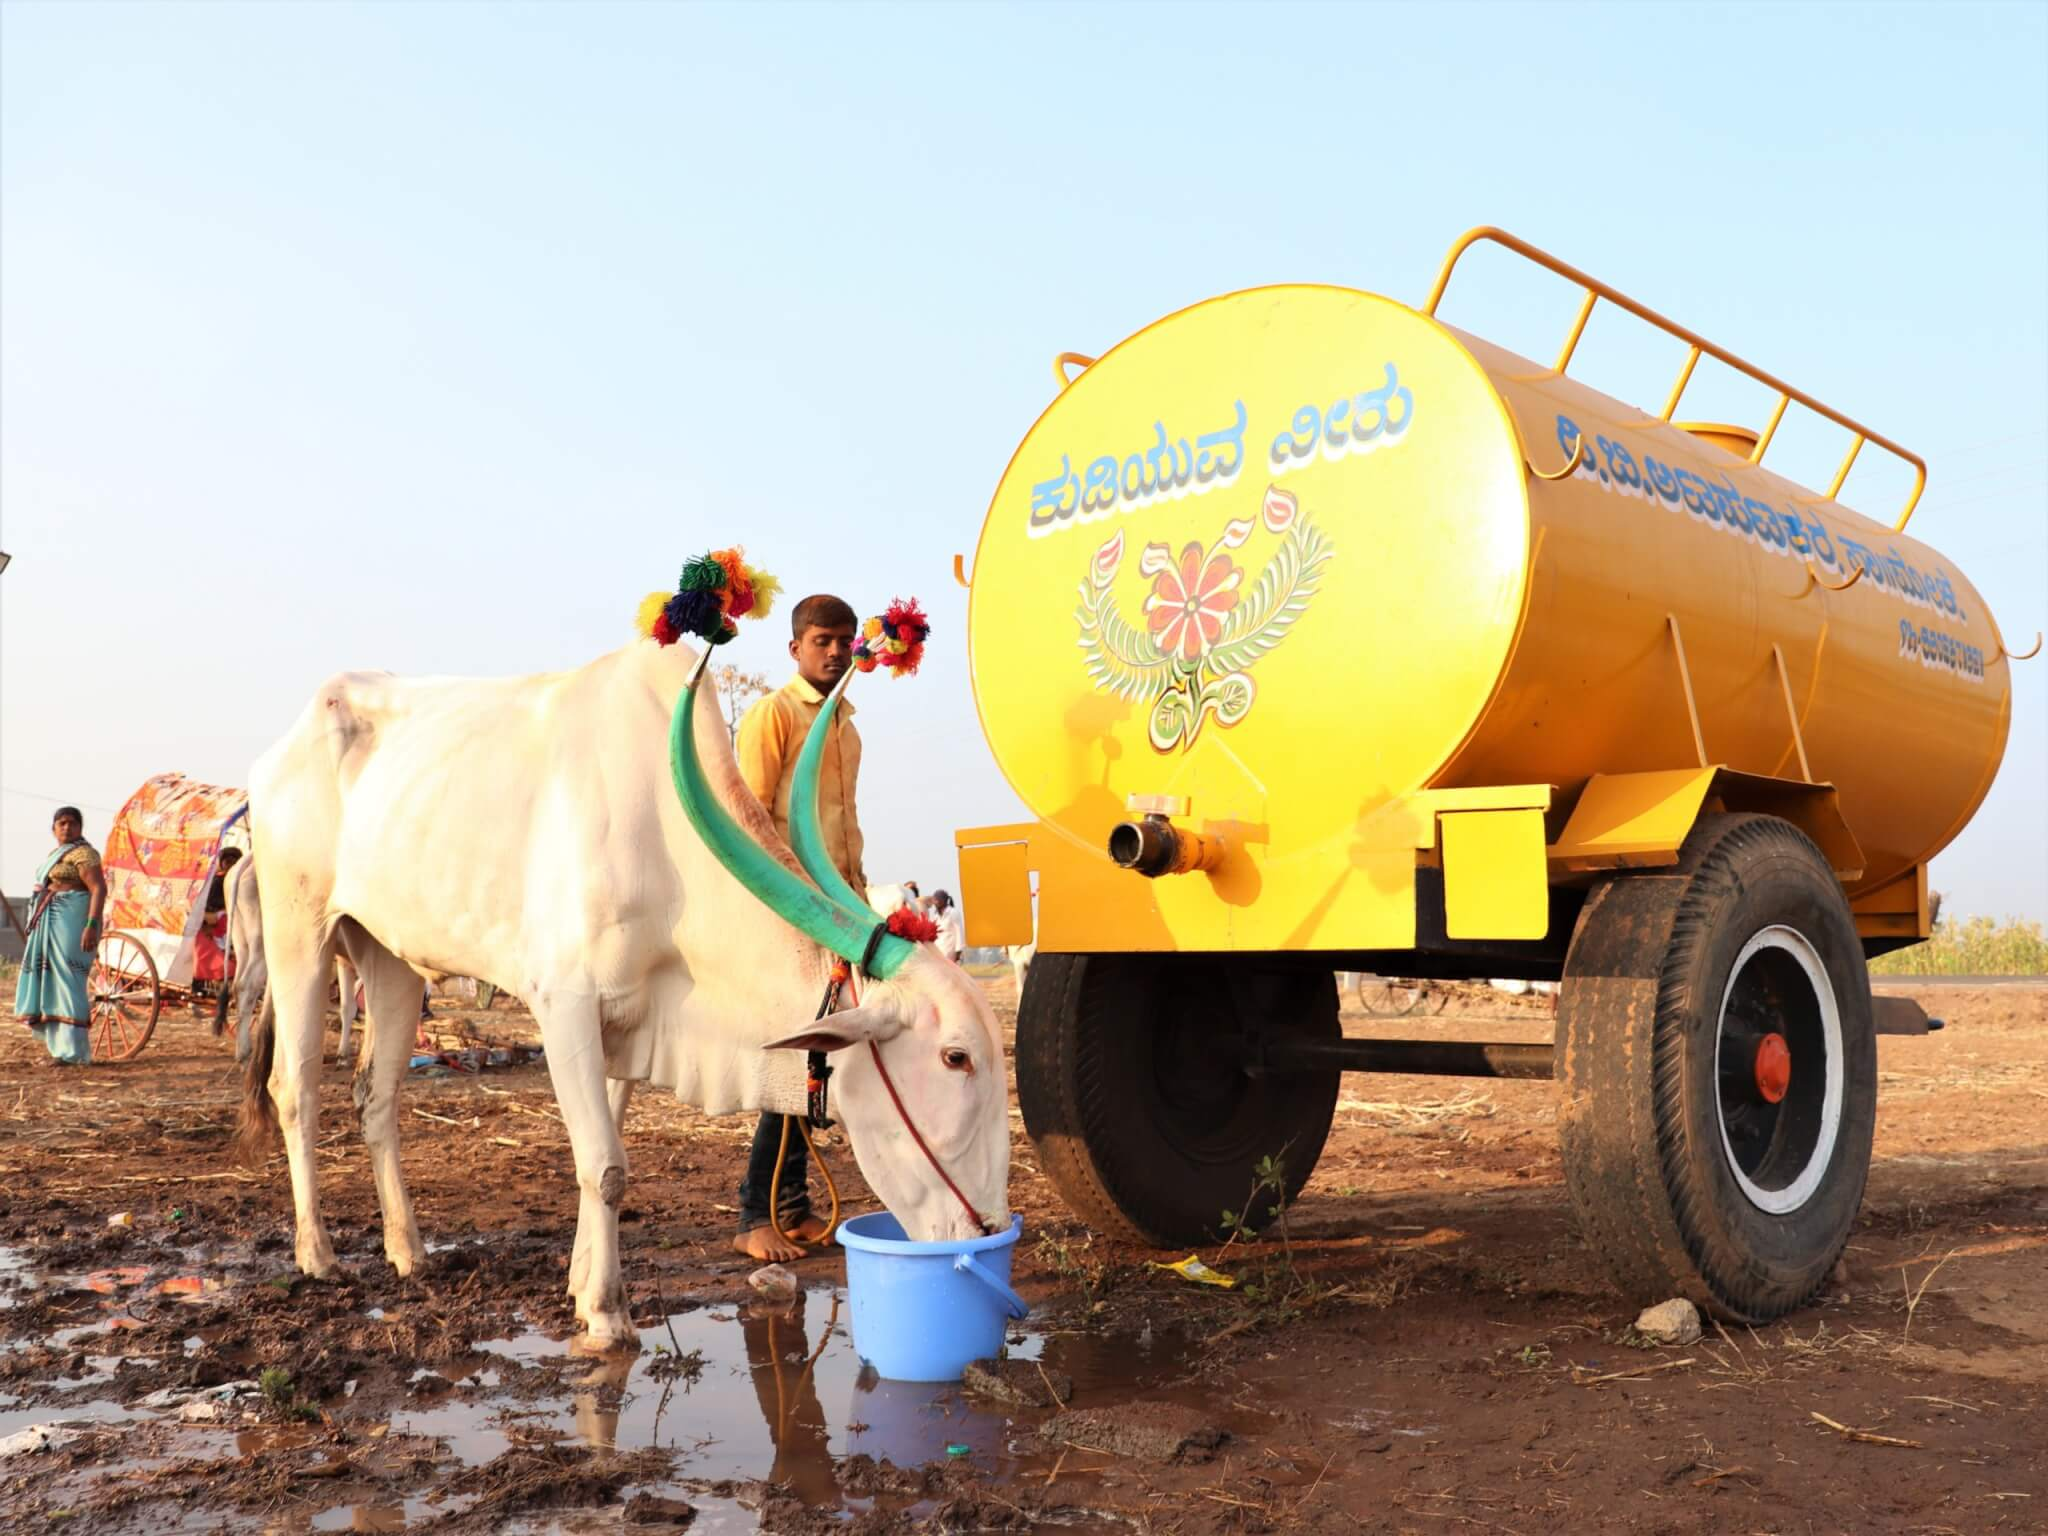 A bullock drinks fresh water from a bucket in front of a yellow water tank.